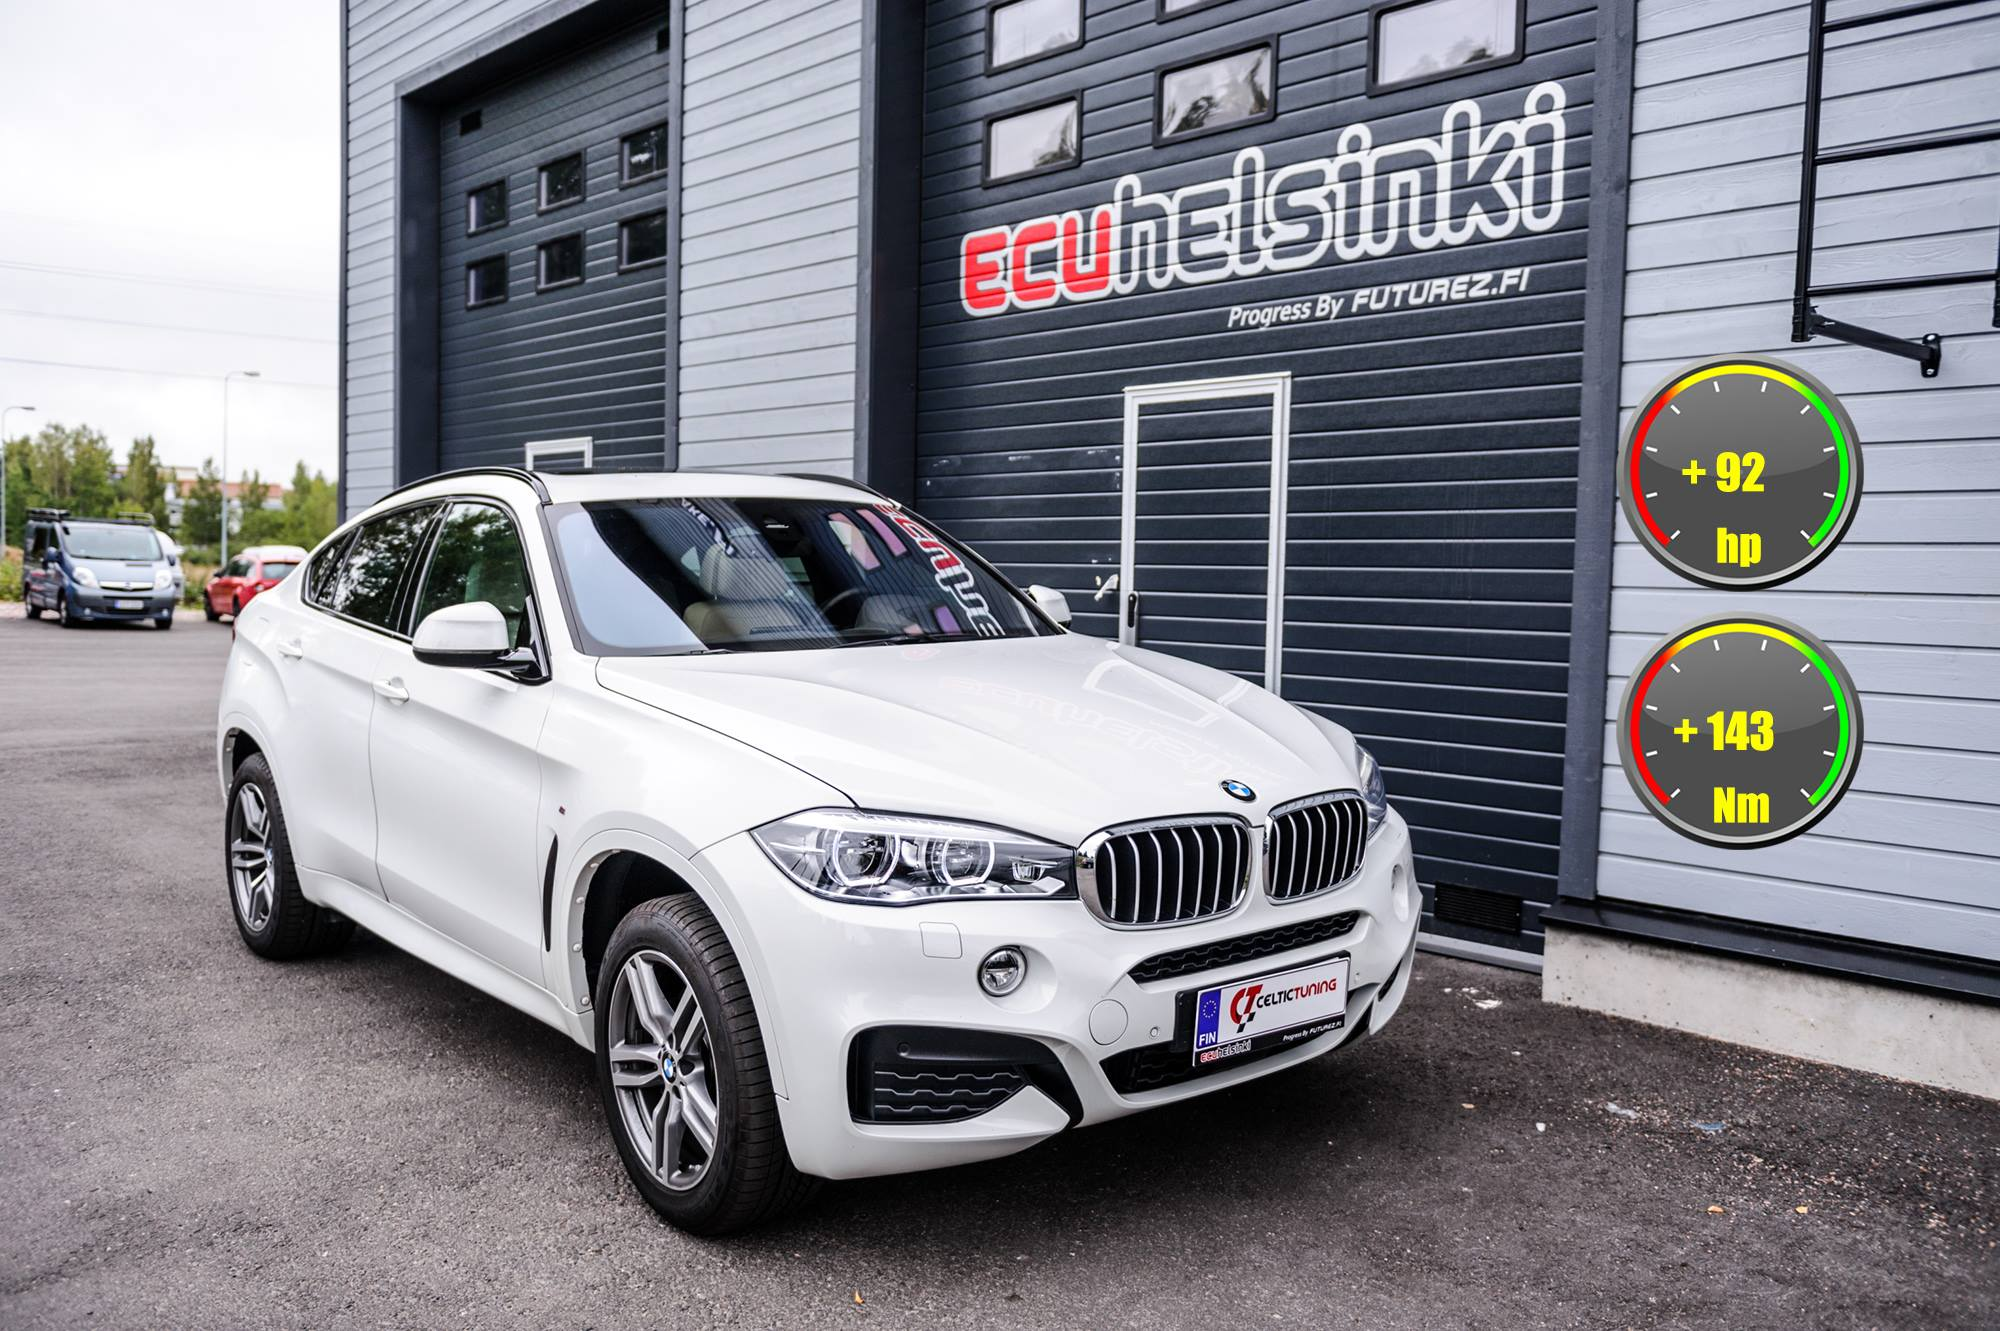 BMW X6 celtic tuning lastutus